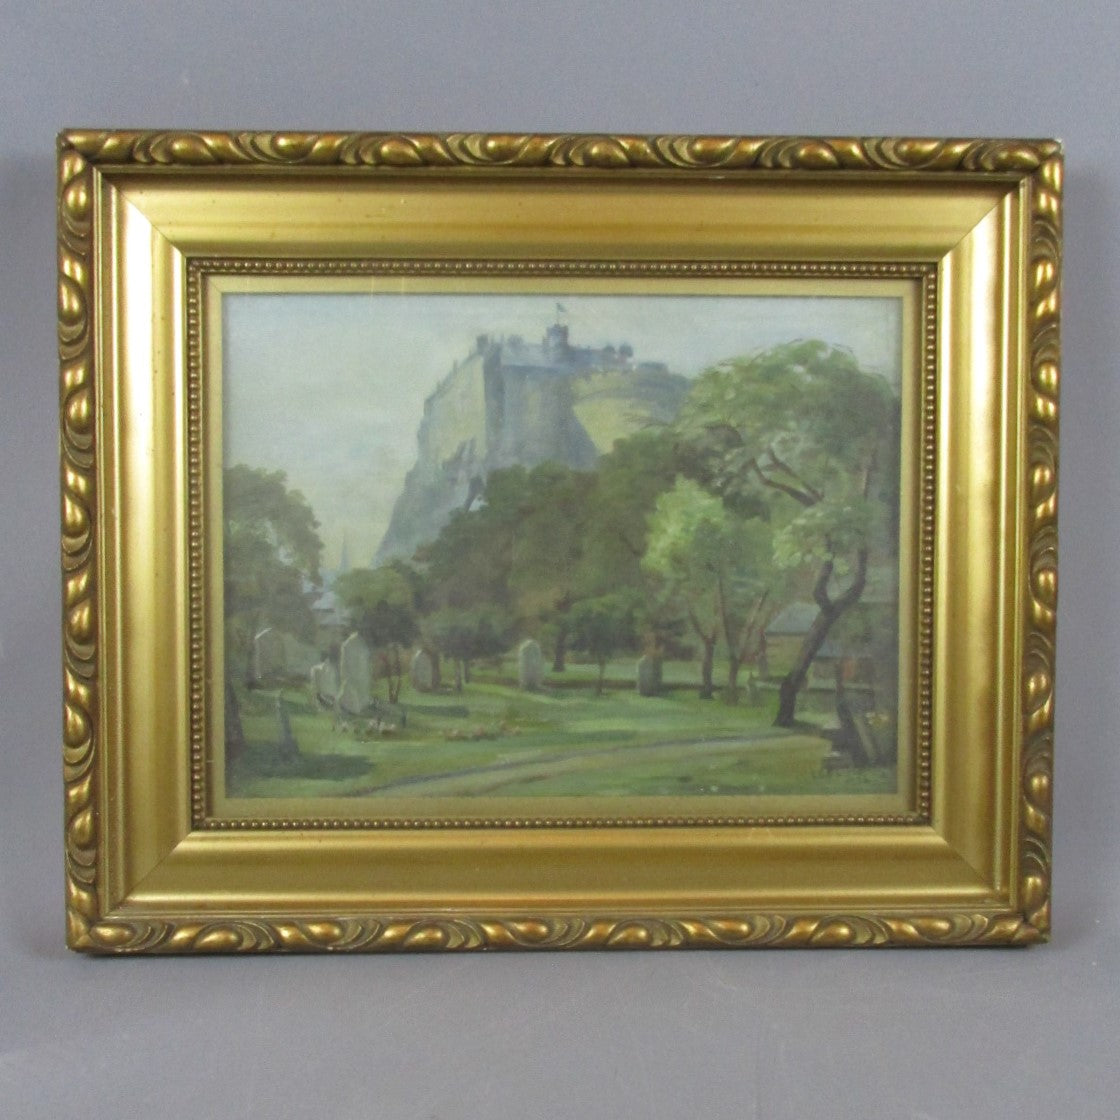 Framed Oil on Canvas Painting of Edinburgh Castle L Oliver Vintage c1926